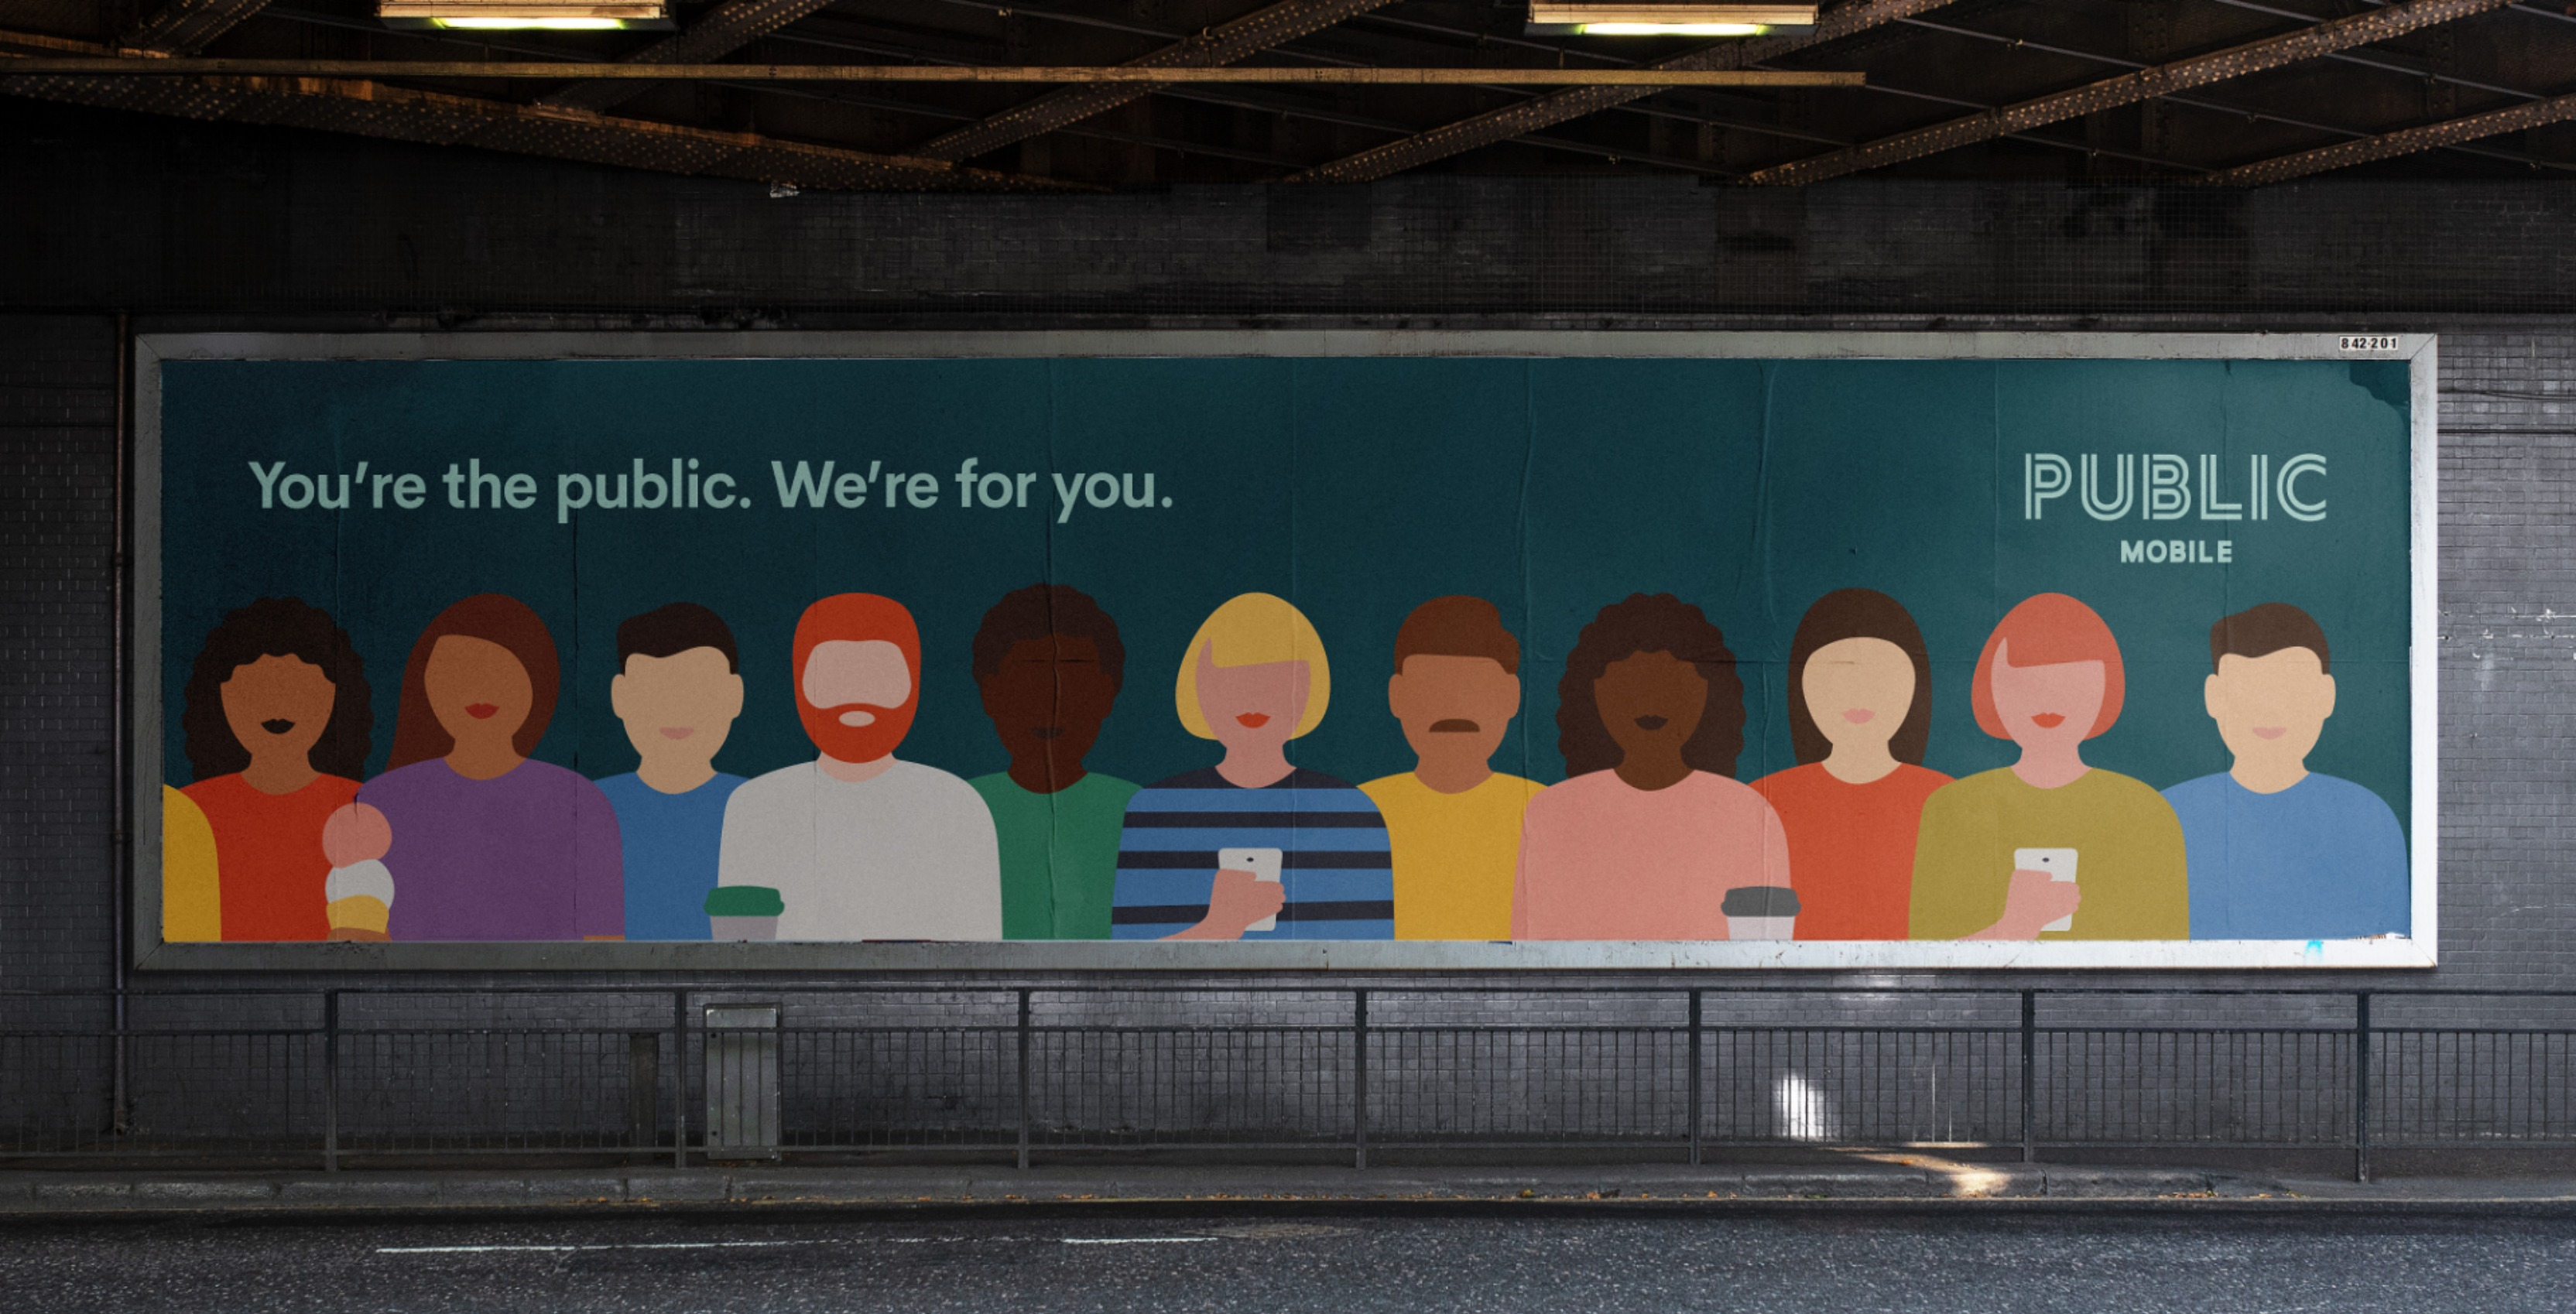 Public Mobile rebrands its visual identity to better represent customers